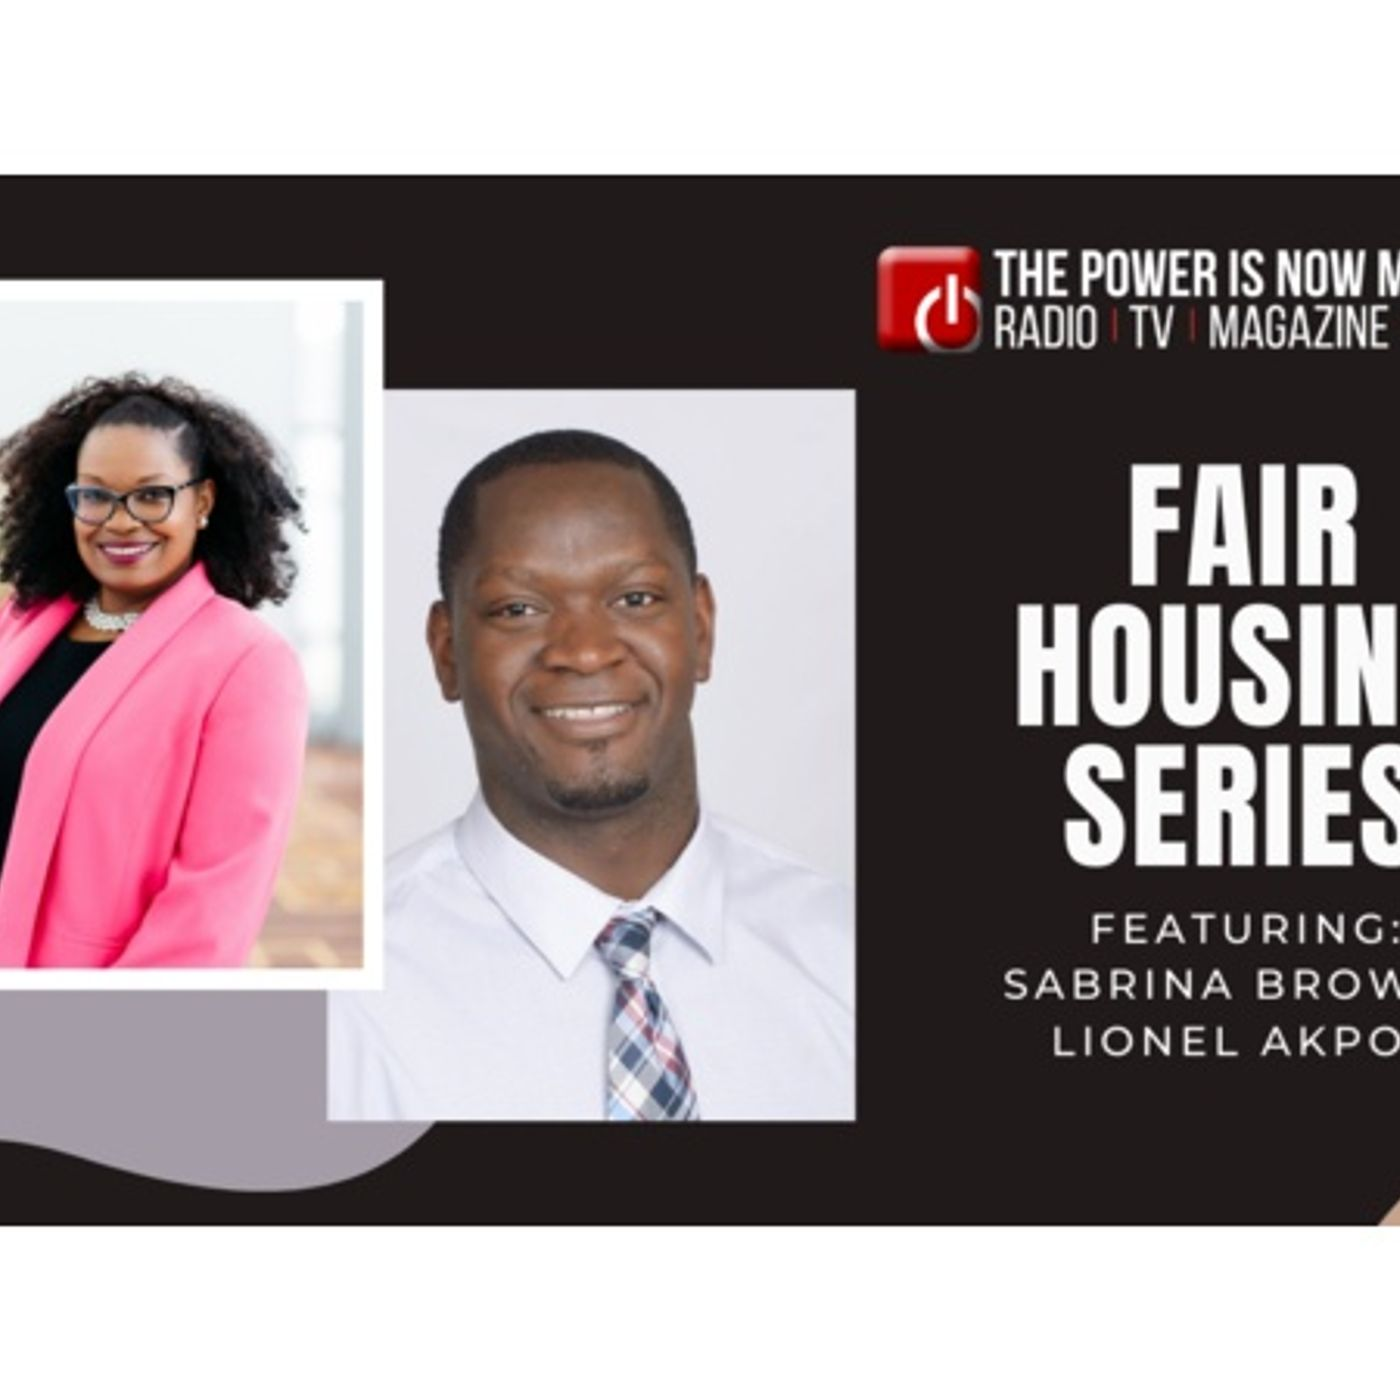 Fair Housing Series 2021: NAREB  Fresno Chapter Lionel Akpovi and Sabrina Brown